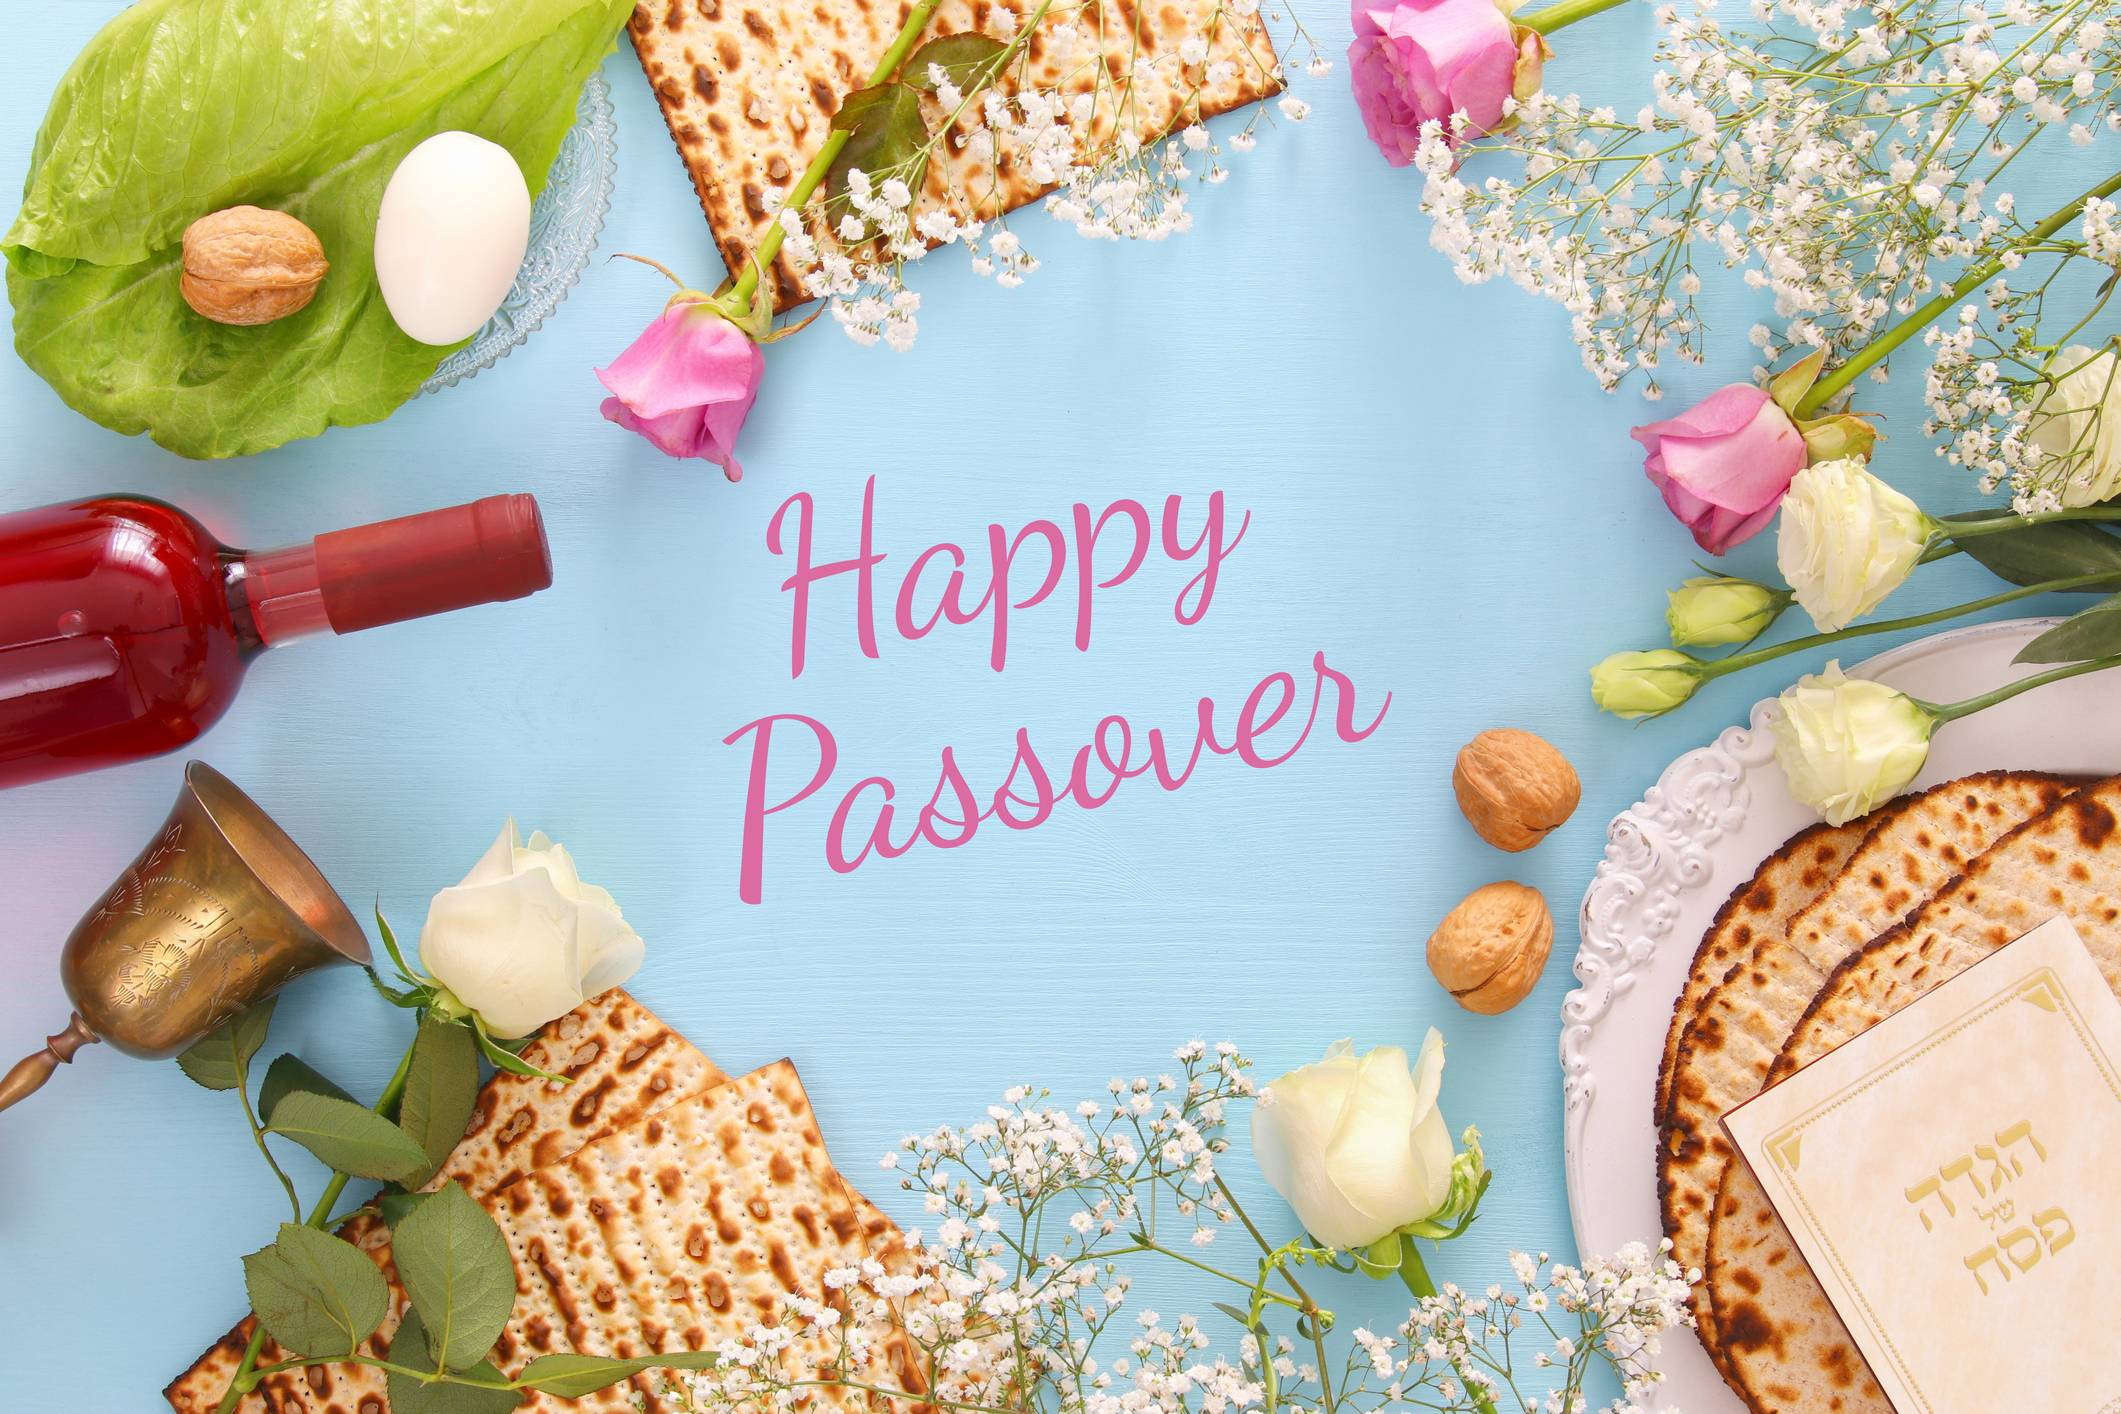 Passover Images